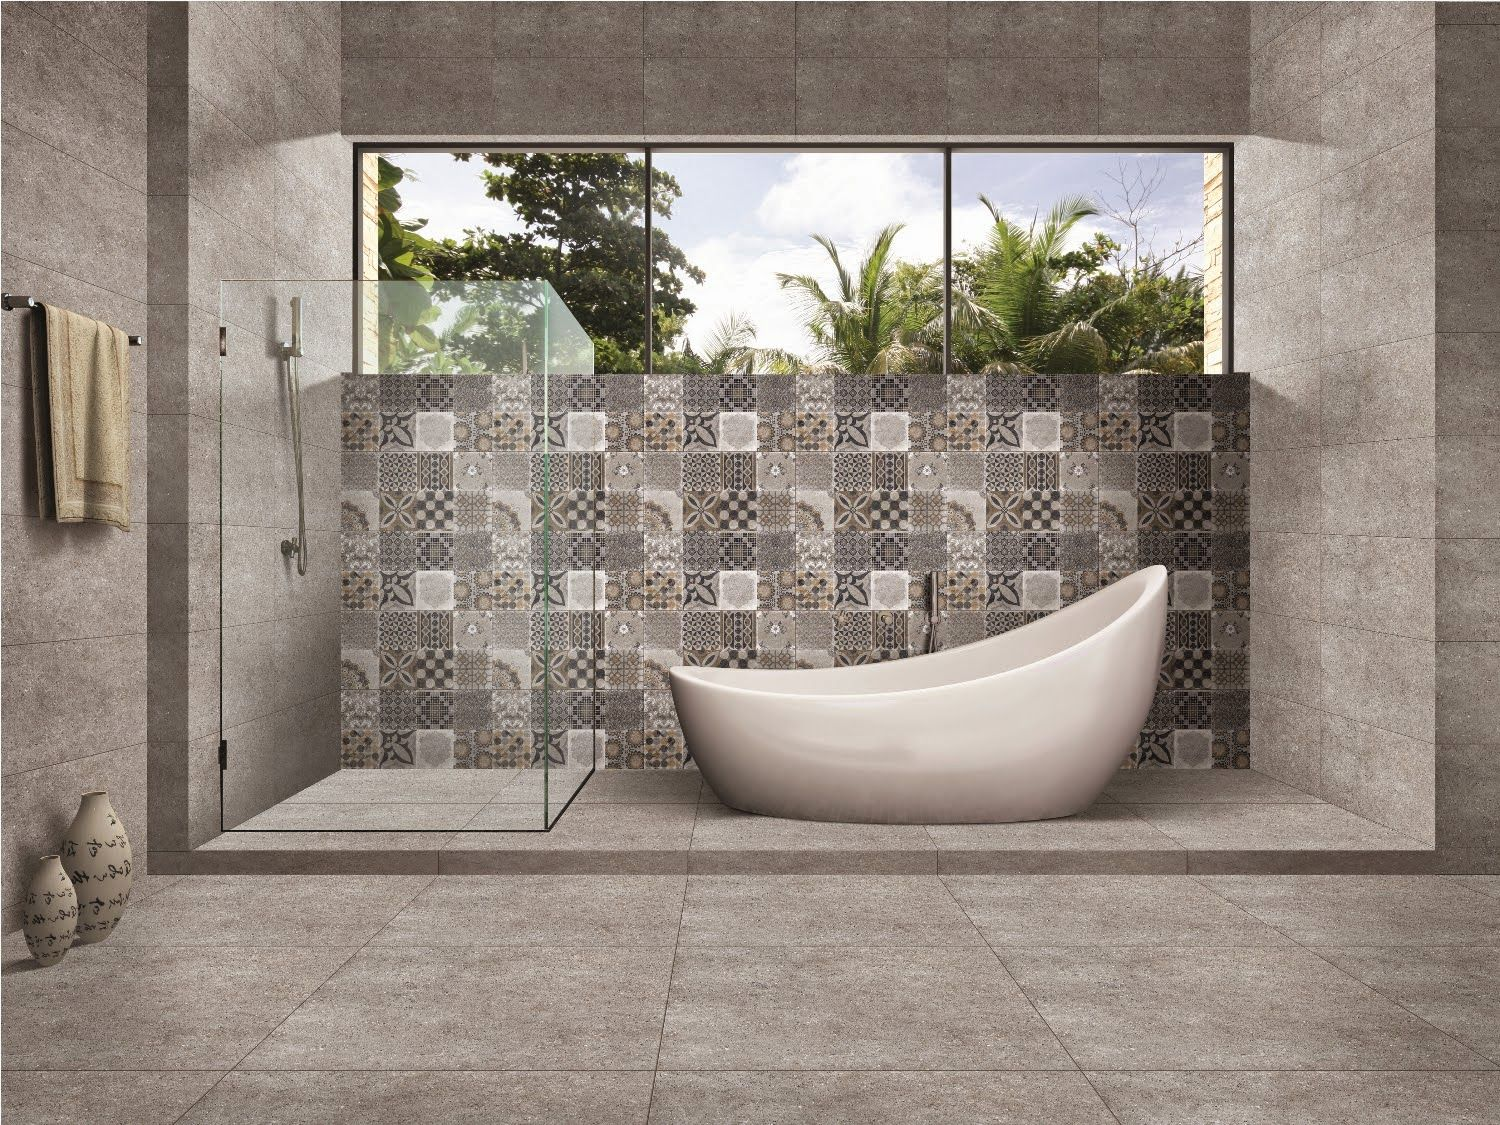 Kajaria Launches The Collection State Of The Art Digital Glazed Vitrified Tiles In 4 Bathroom Design Decor Natural Stone Tile Bathroom Big Bathroom Designs